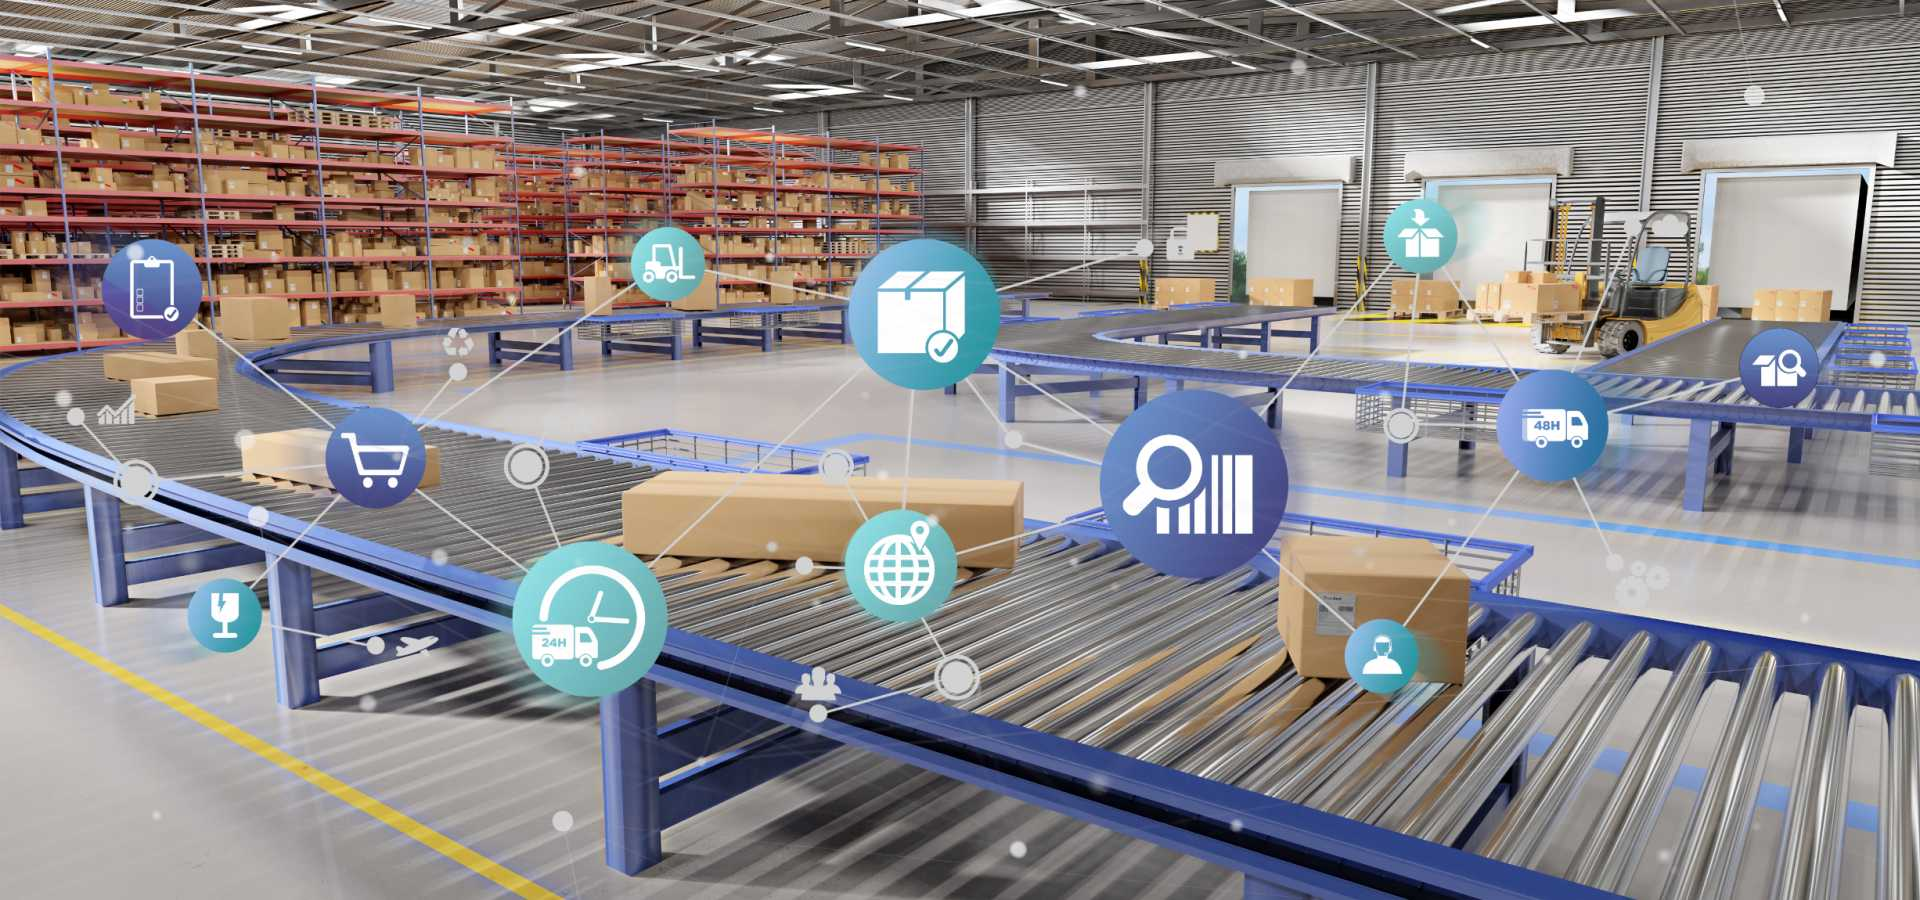 Full size - Adaptive Manufacturing Enterprises -Digital innovation Logistics supply chain digital technologies transformation warehouse iot connectivity data - shutterstock_1144447313